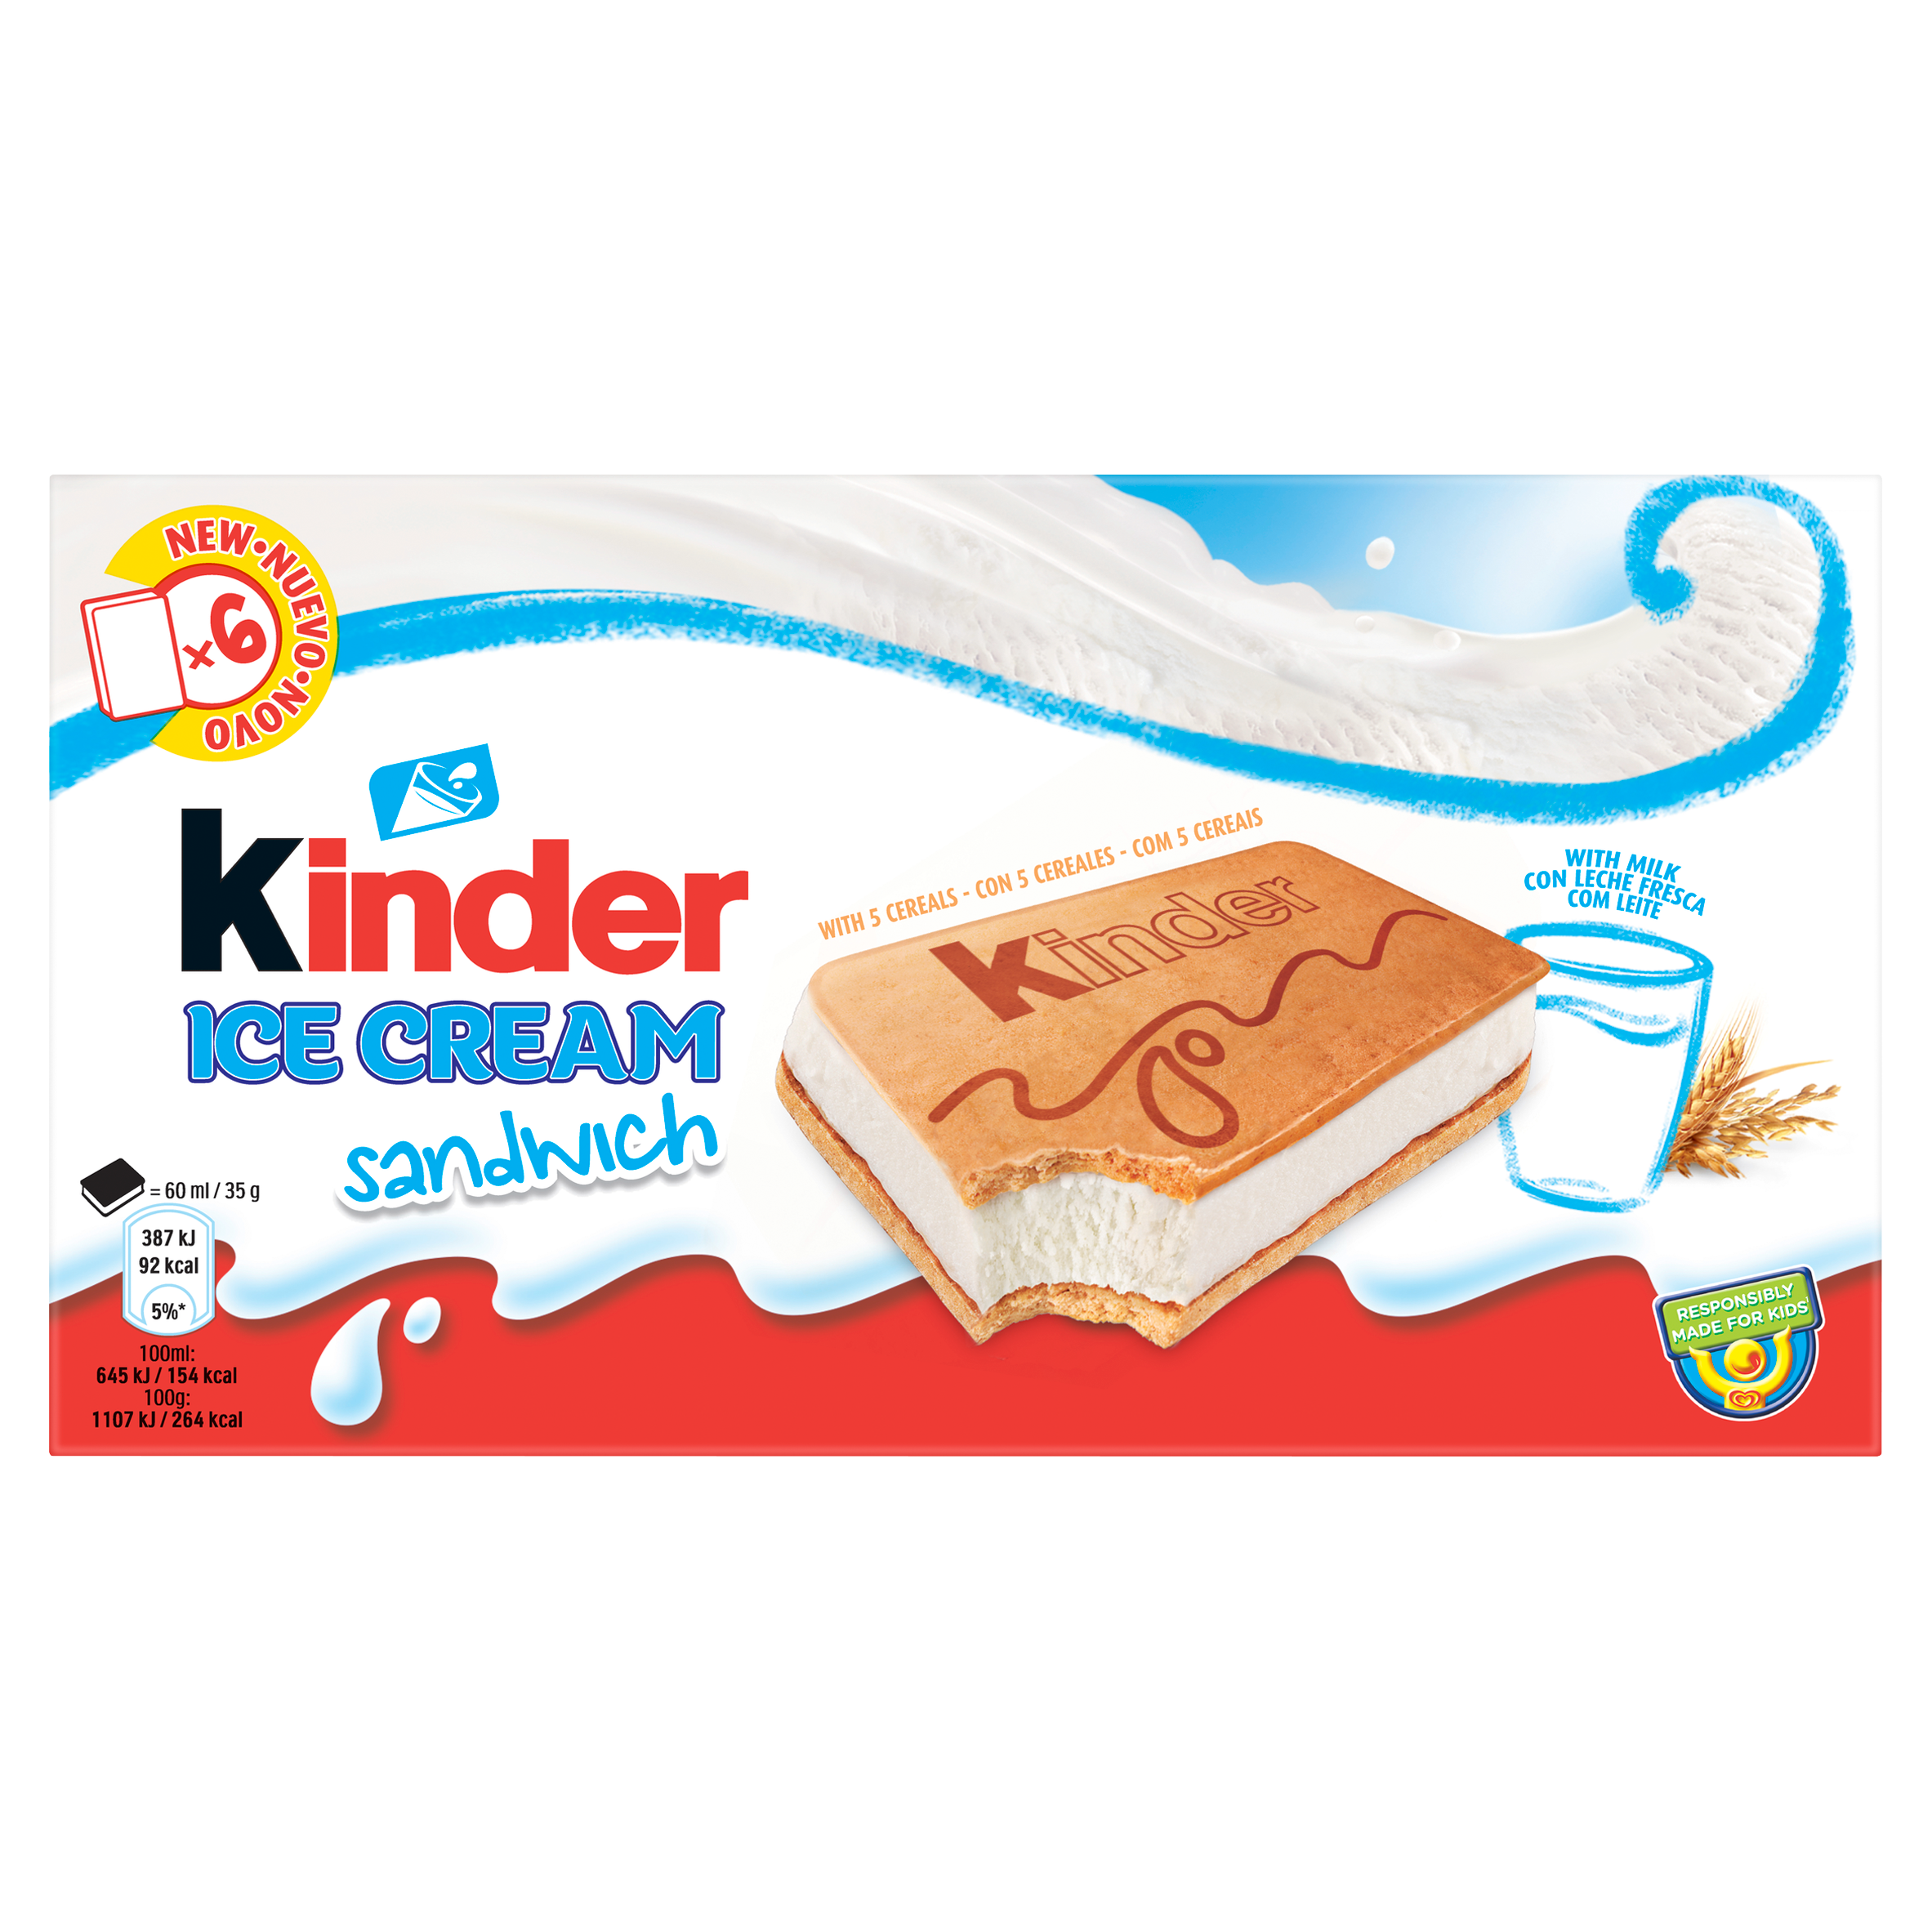 Kinder IJs Sandwich 6 x 60 ml